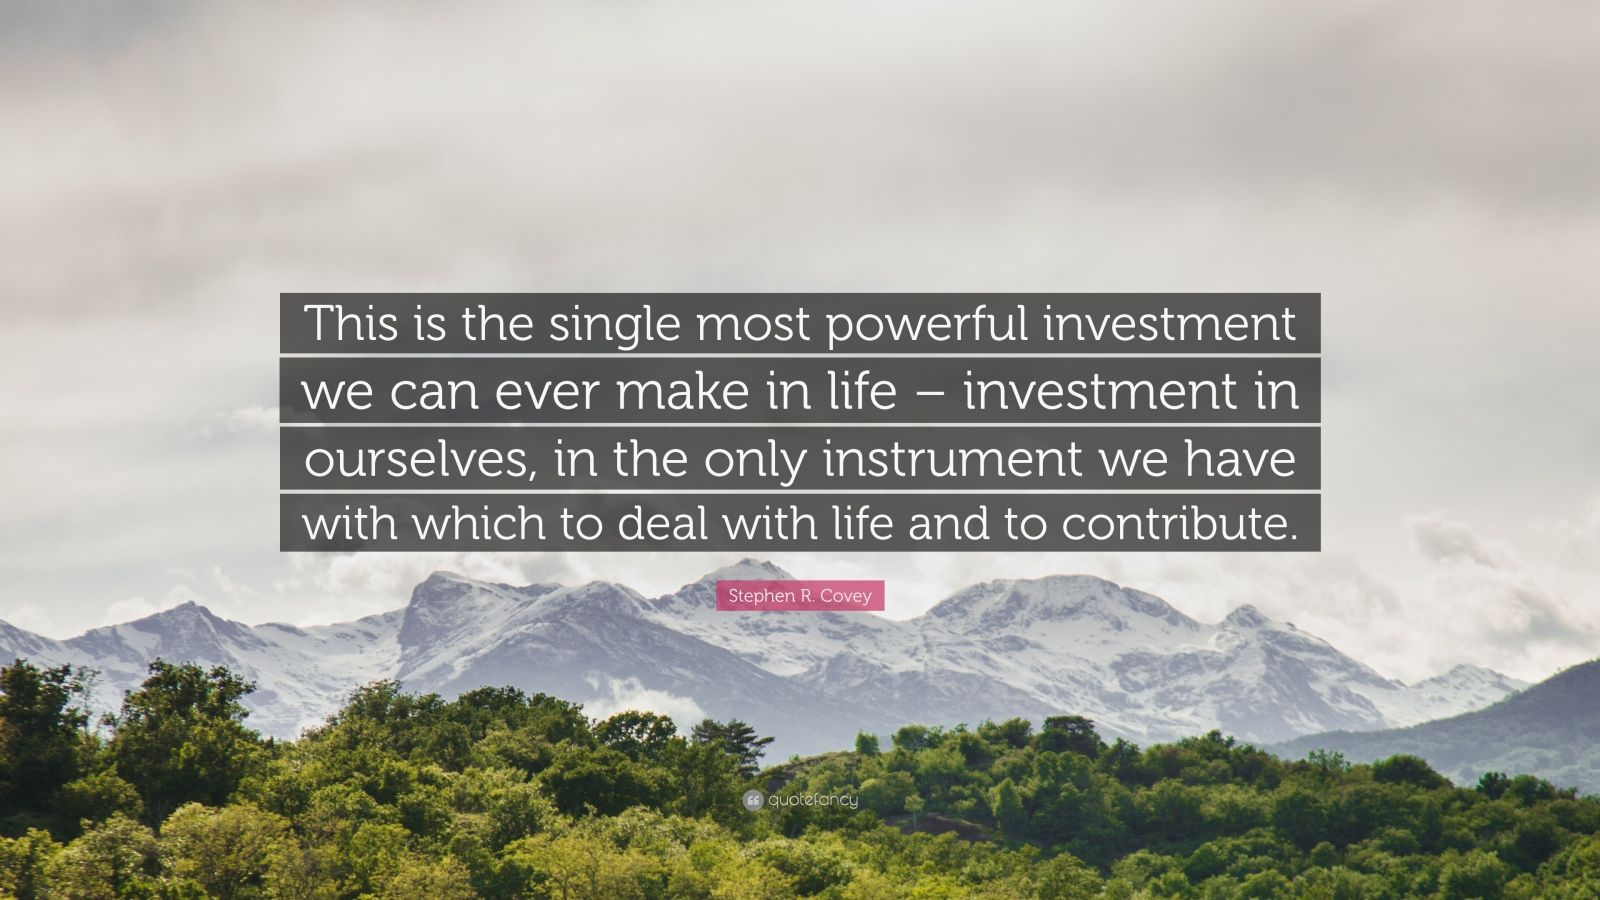 """Stephen R. Covey Quote: """"This is the single most powerful investment we can ever make in life – investment in ourselves, in the only instrument we have with which to deal with life and to contribute."""""""